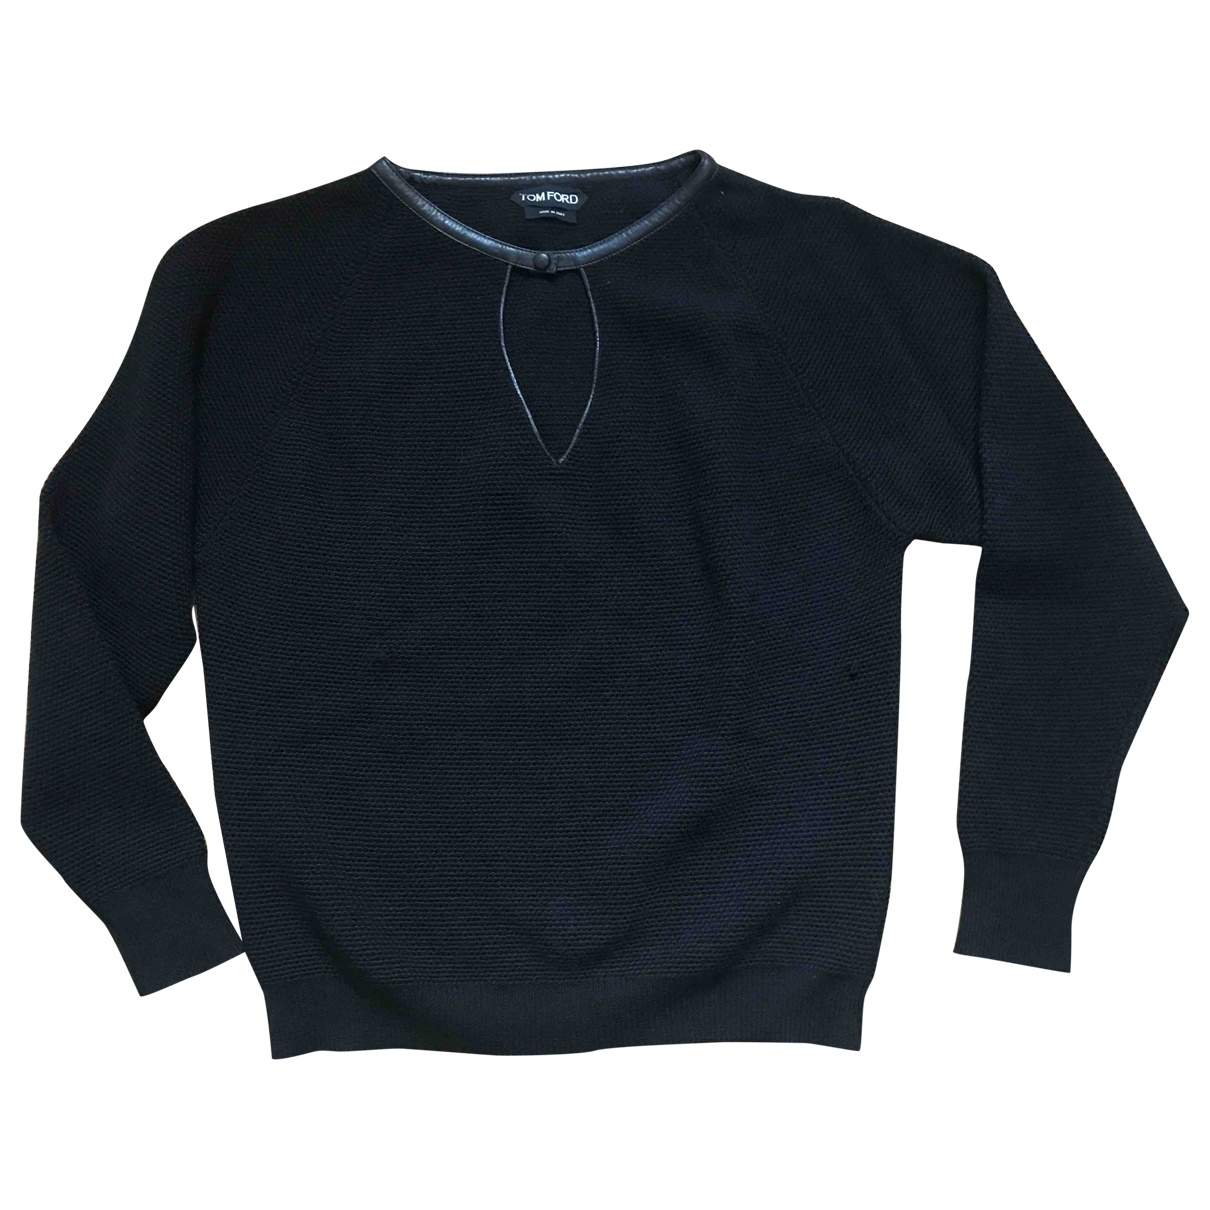 Tom Ford \N Pullover in  Schwarz Wolle